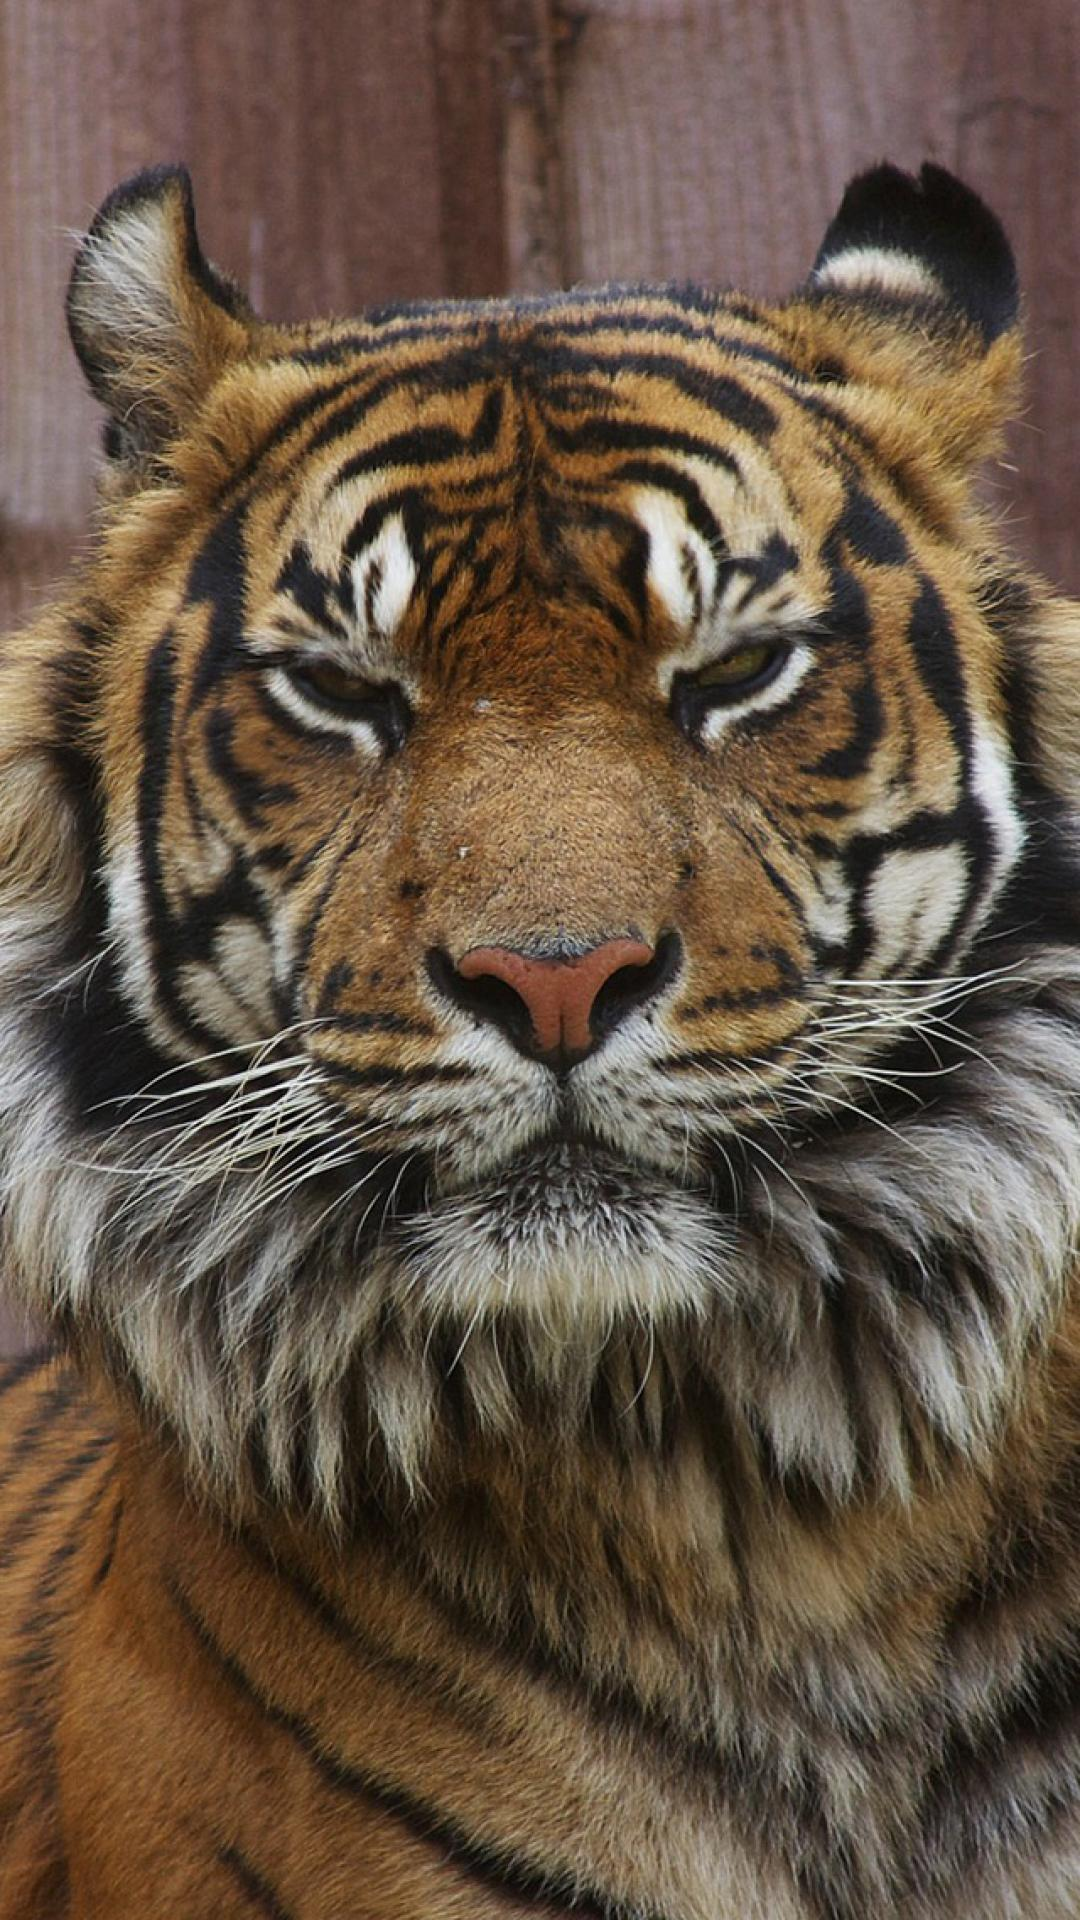 Tiger Iphone 6 Wallpaper Angry Tiger Eyes Wallpapers Wallpaper Cave